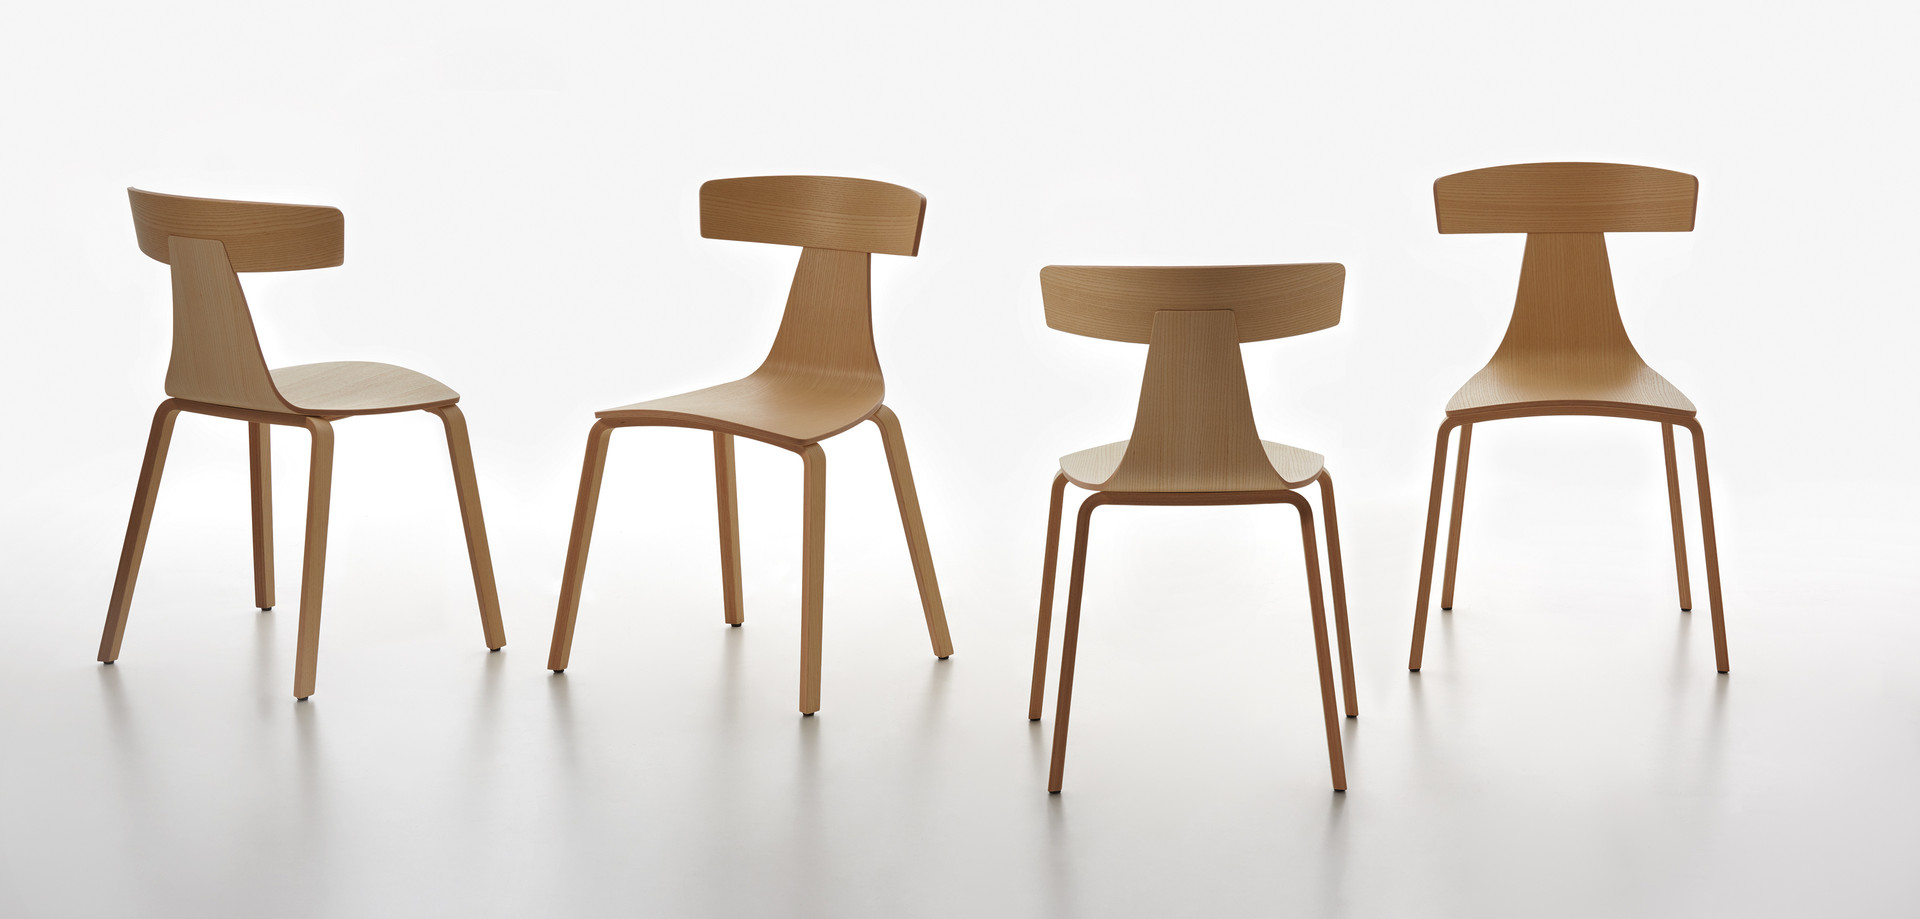 Plank - REMO wood chair, ash natural, all sides